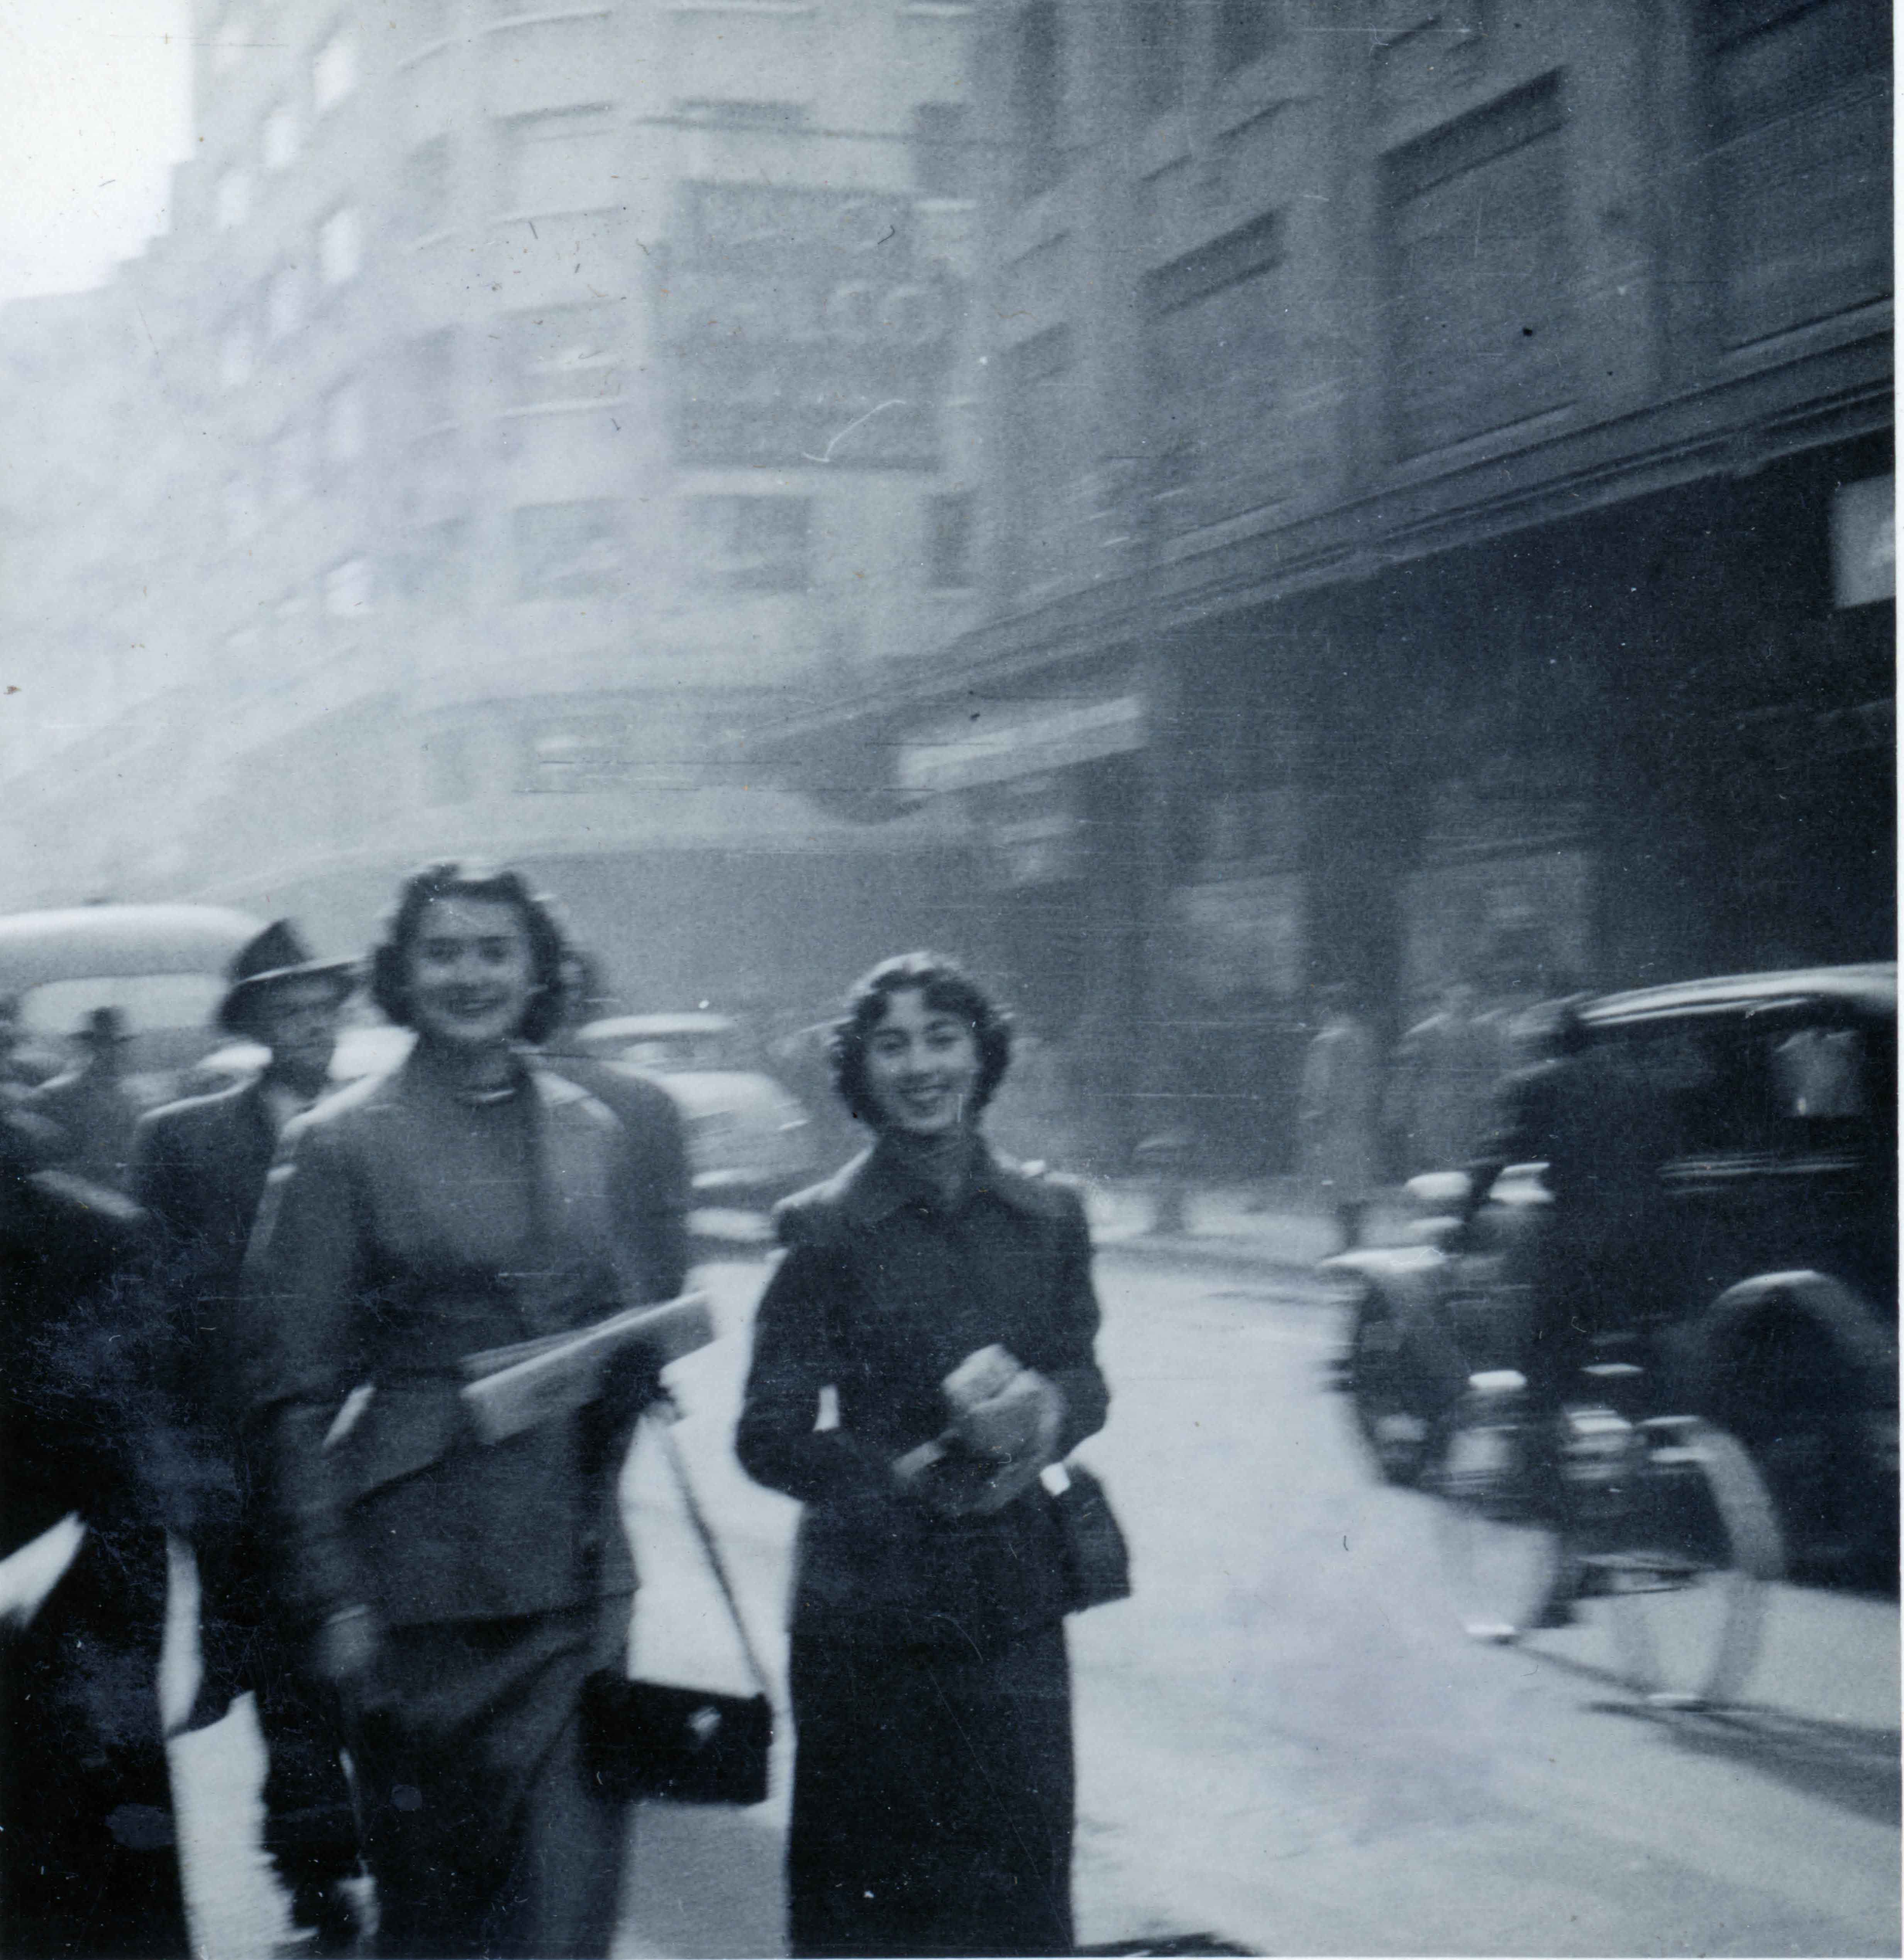 Enterreno - Fotos históricas de chile - fotos antiguas de Chile - Calle Ahumada en 1950